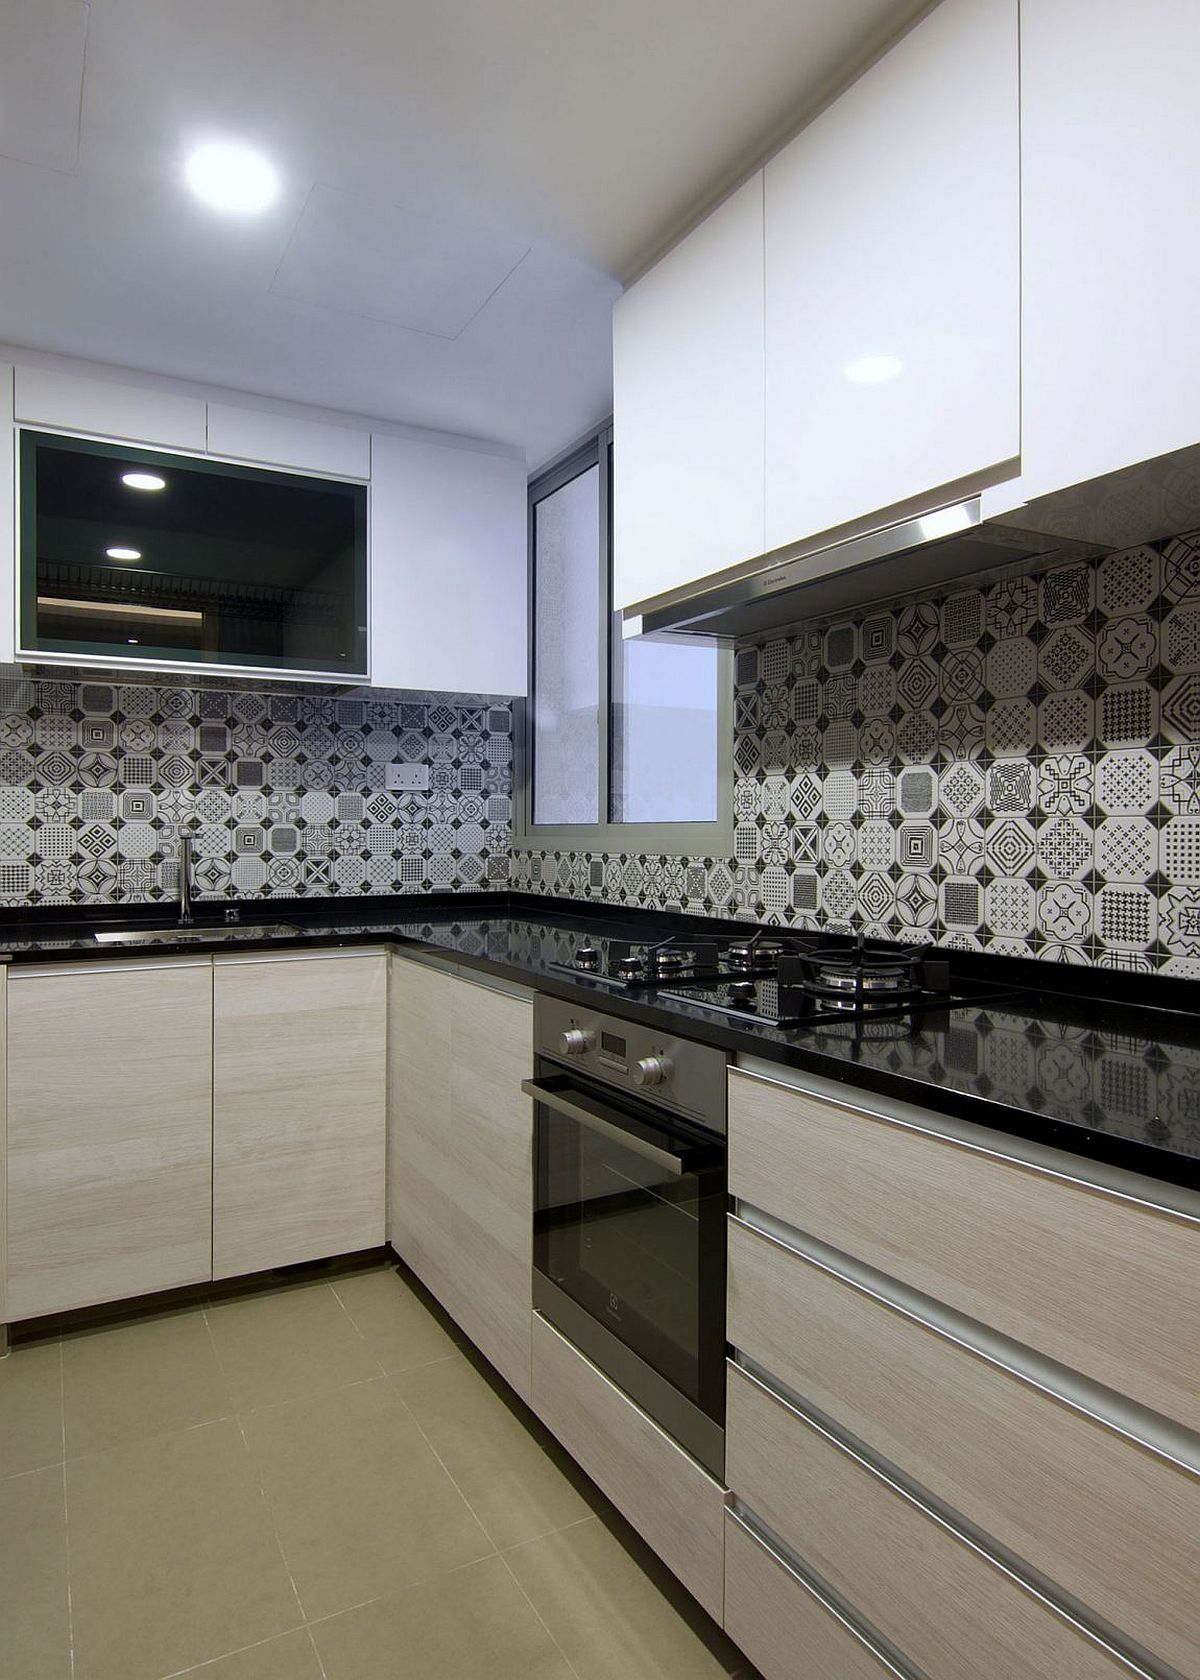 Kitchen Backsplash Singapore rejuvenated singapore home inspiredpiet mondrian and urban